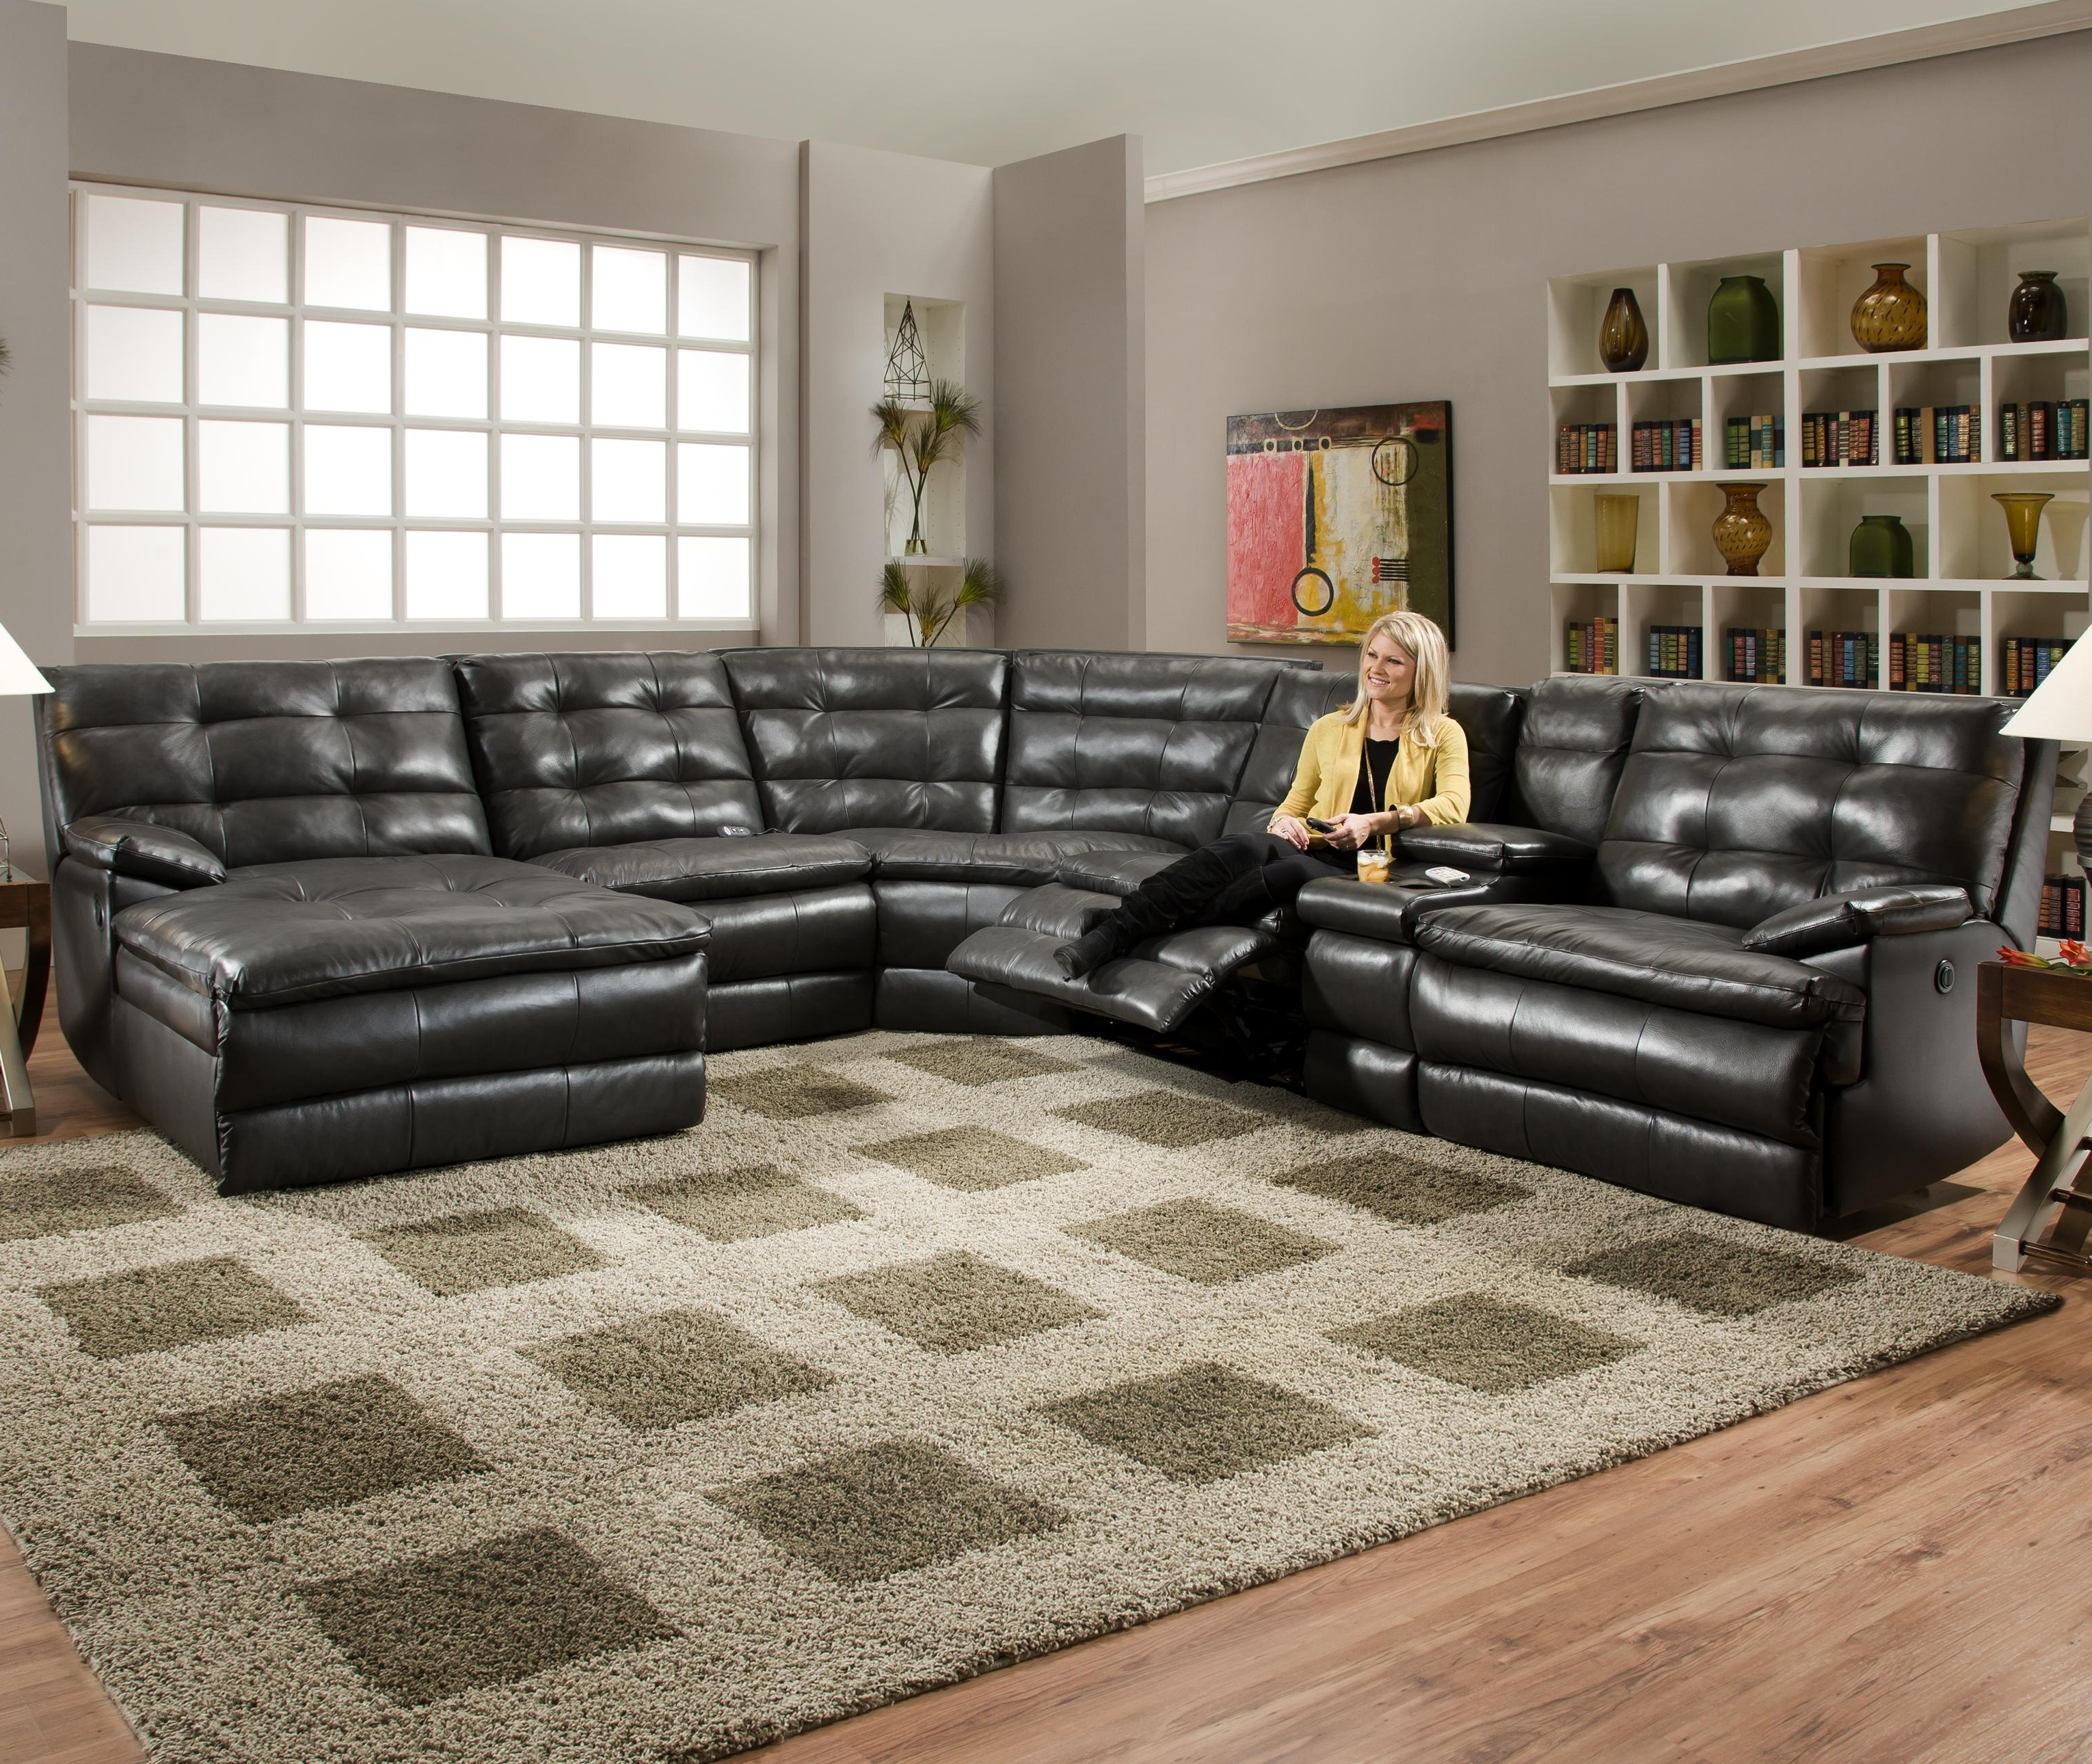 2017 Sectional Sofa Design: Recliner Sectional Sofas Microfiber In Sectional Sofas At Birmingham Al (View 1 of 15)